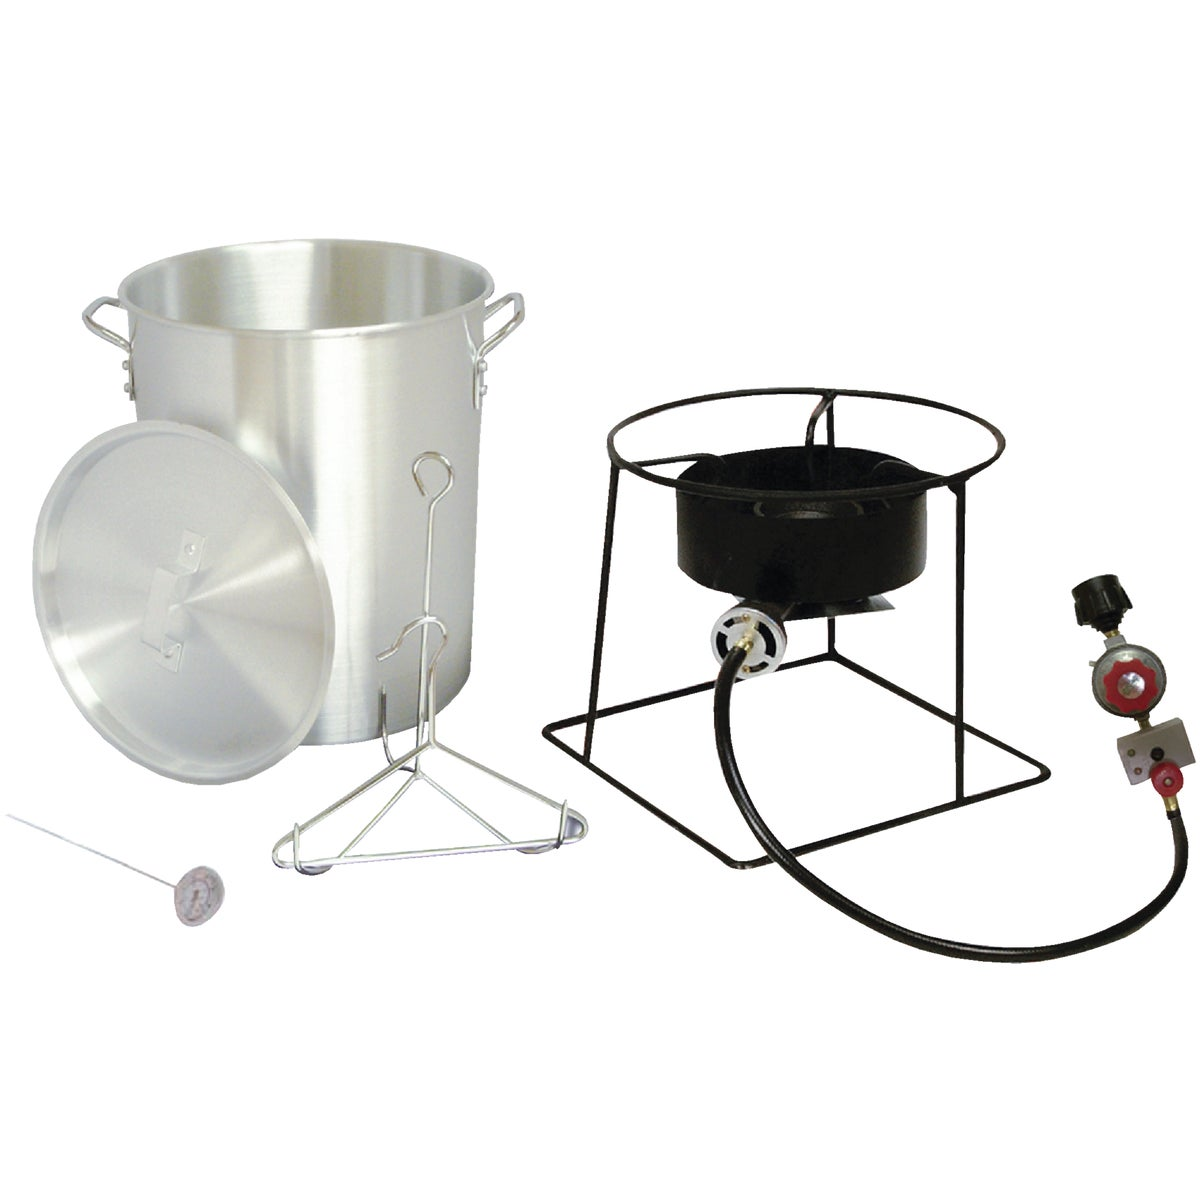 29 QT TURKEY FRYER - 1266 by Metal Fusion Inc